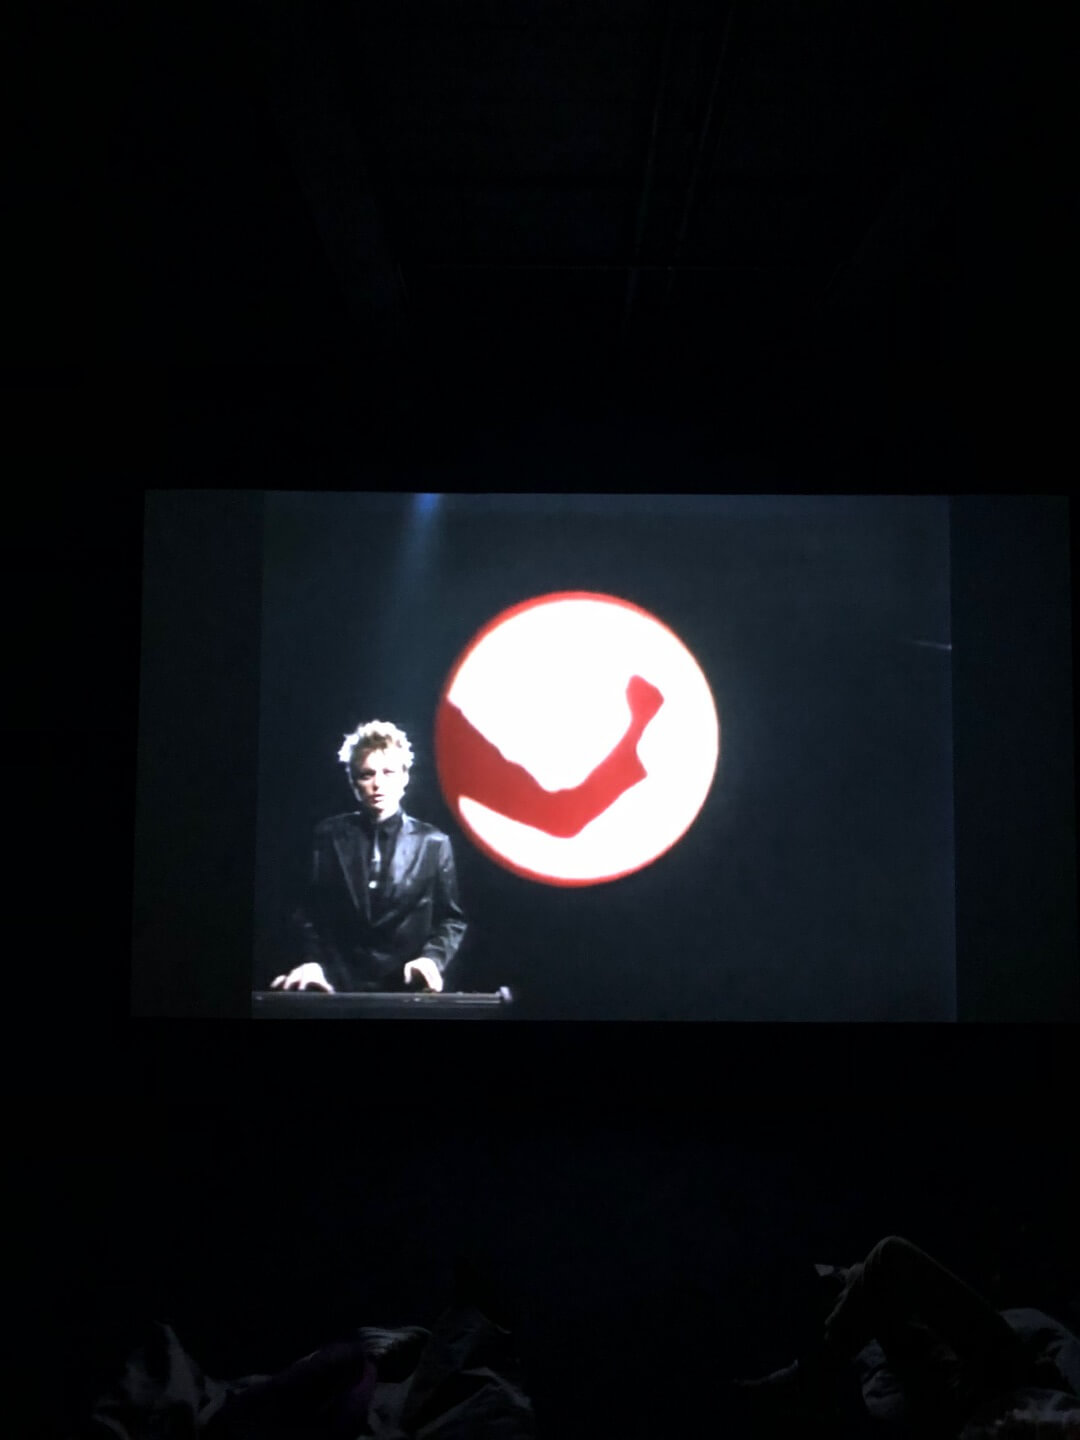 2_Laurie Anderson, O Superman, 1982, video